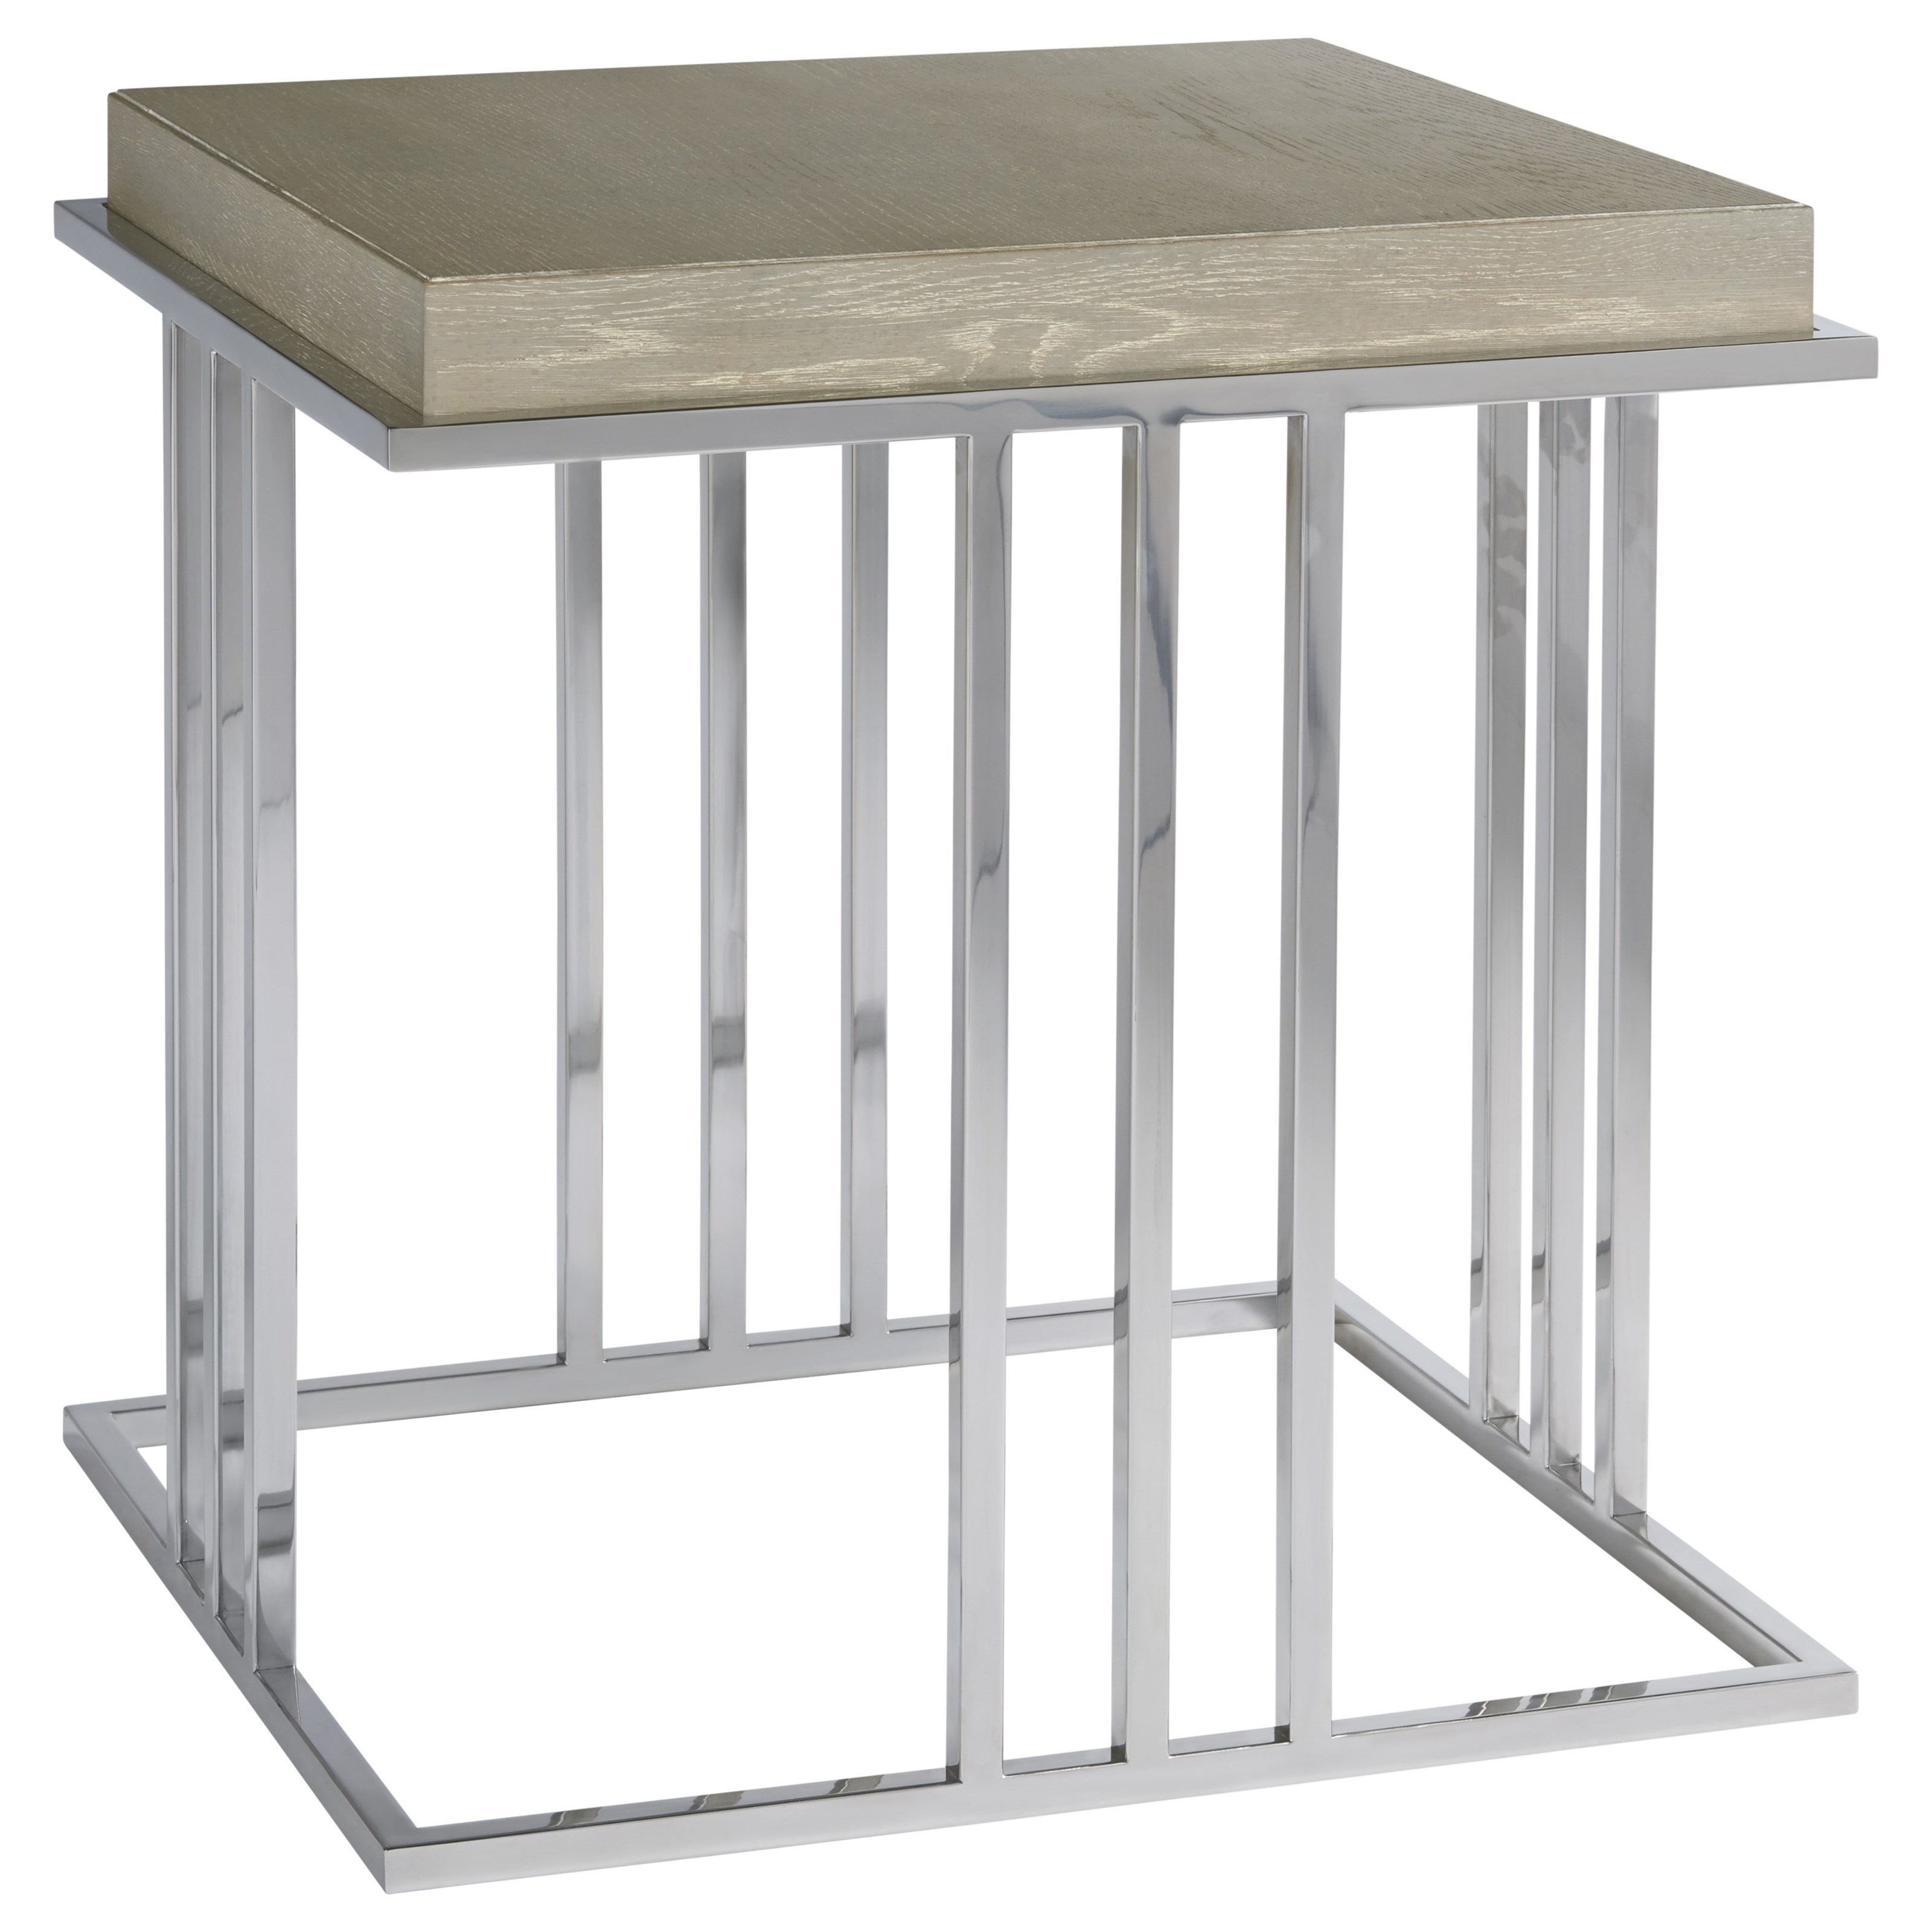 Zephyr End Table by Universal at Baer's Furniture